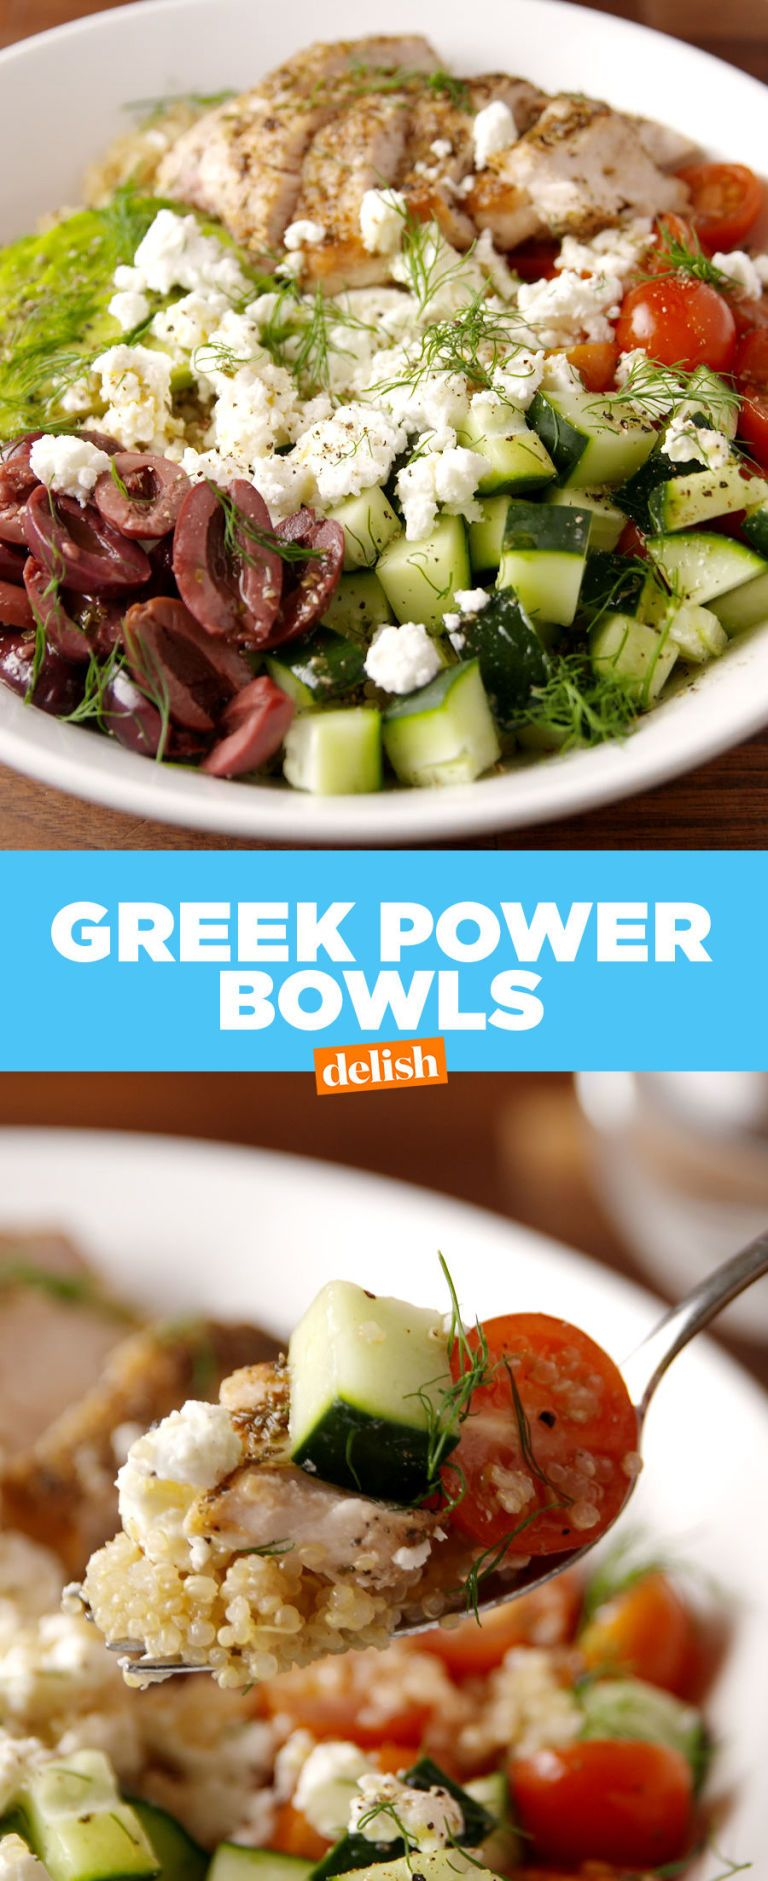 Greek power bowls are the boost your dinner needs greek delish greek power bowls are the boost your dinner needs forumfinder Choice Image